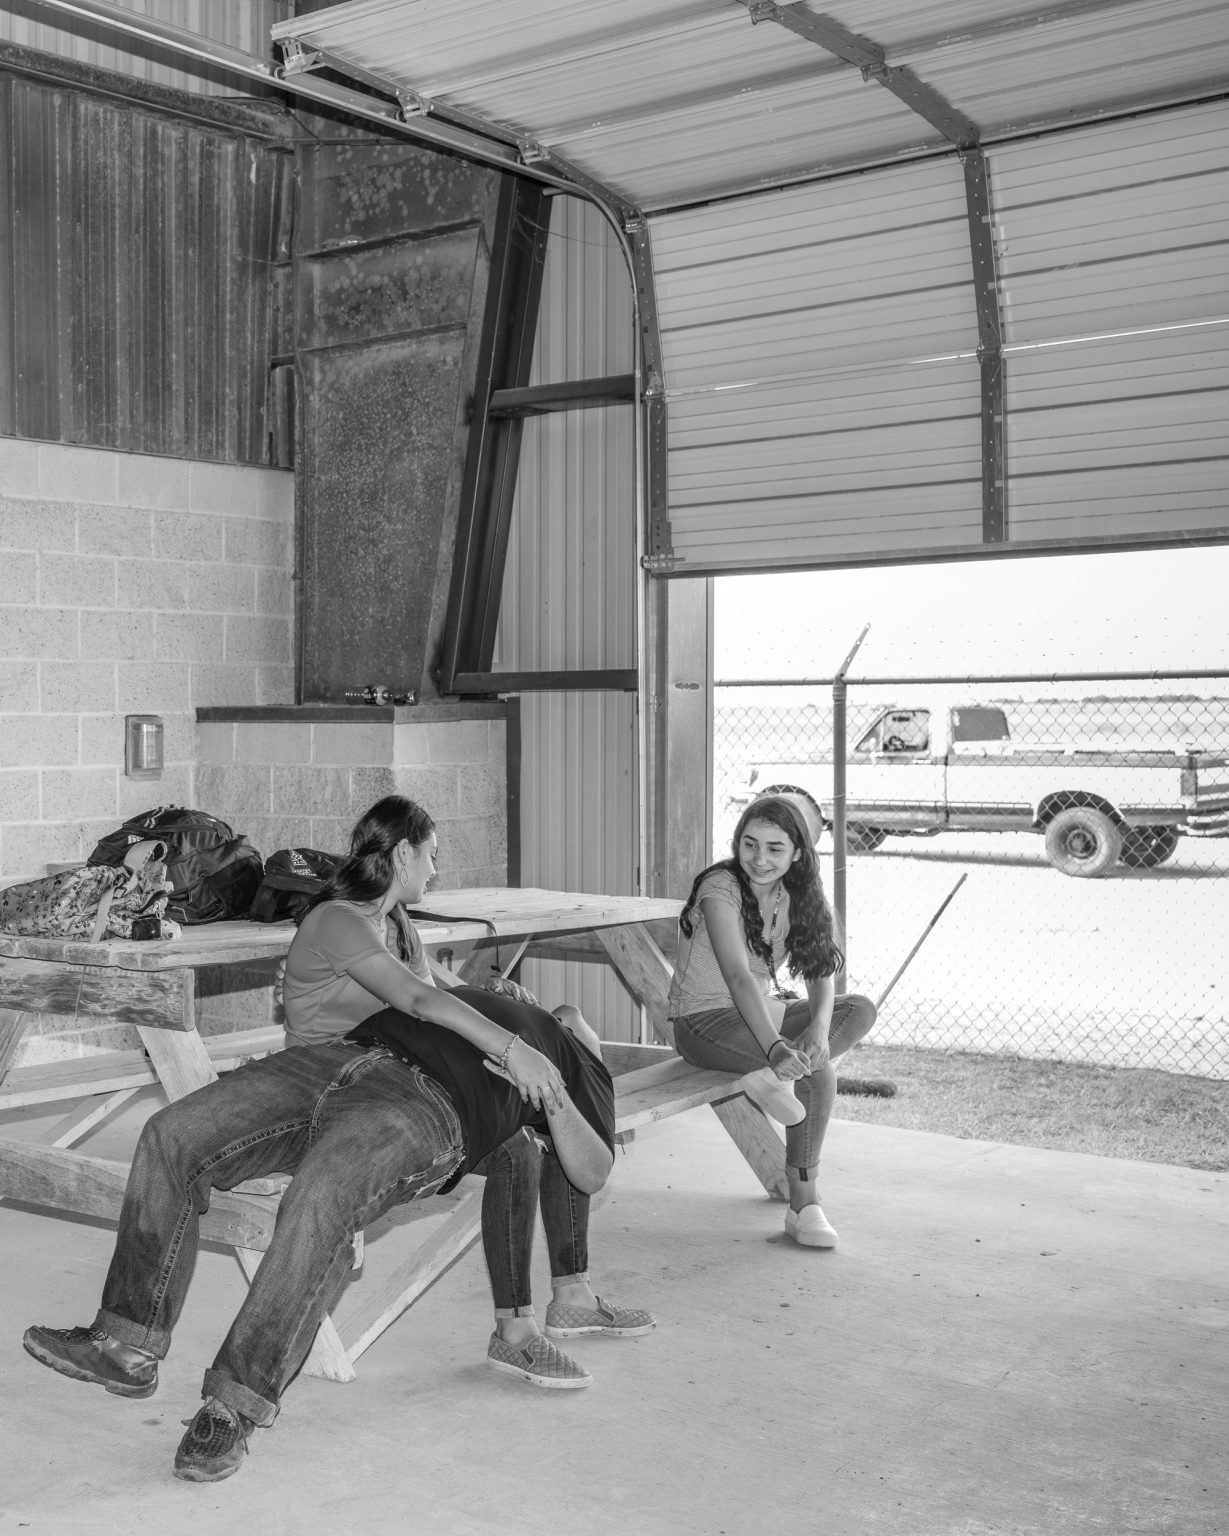 Workers resting at the end of the shift at the barn. La Joya, Texas. October 2019